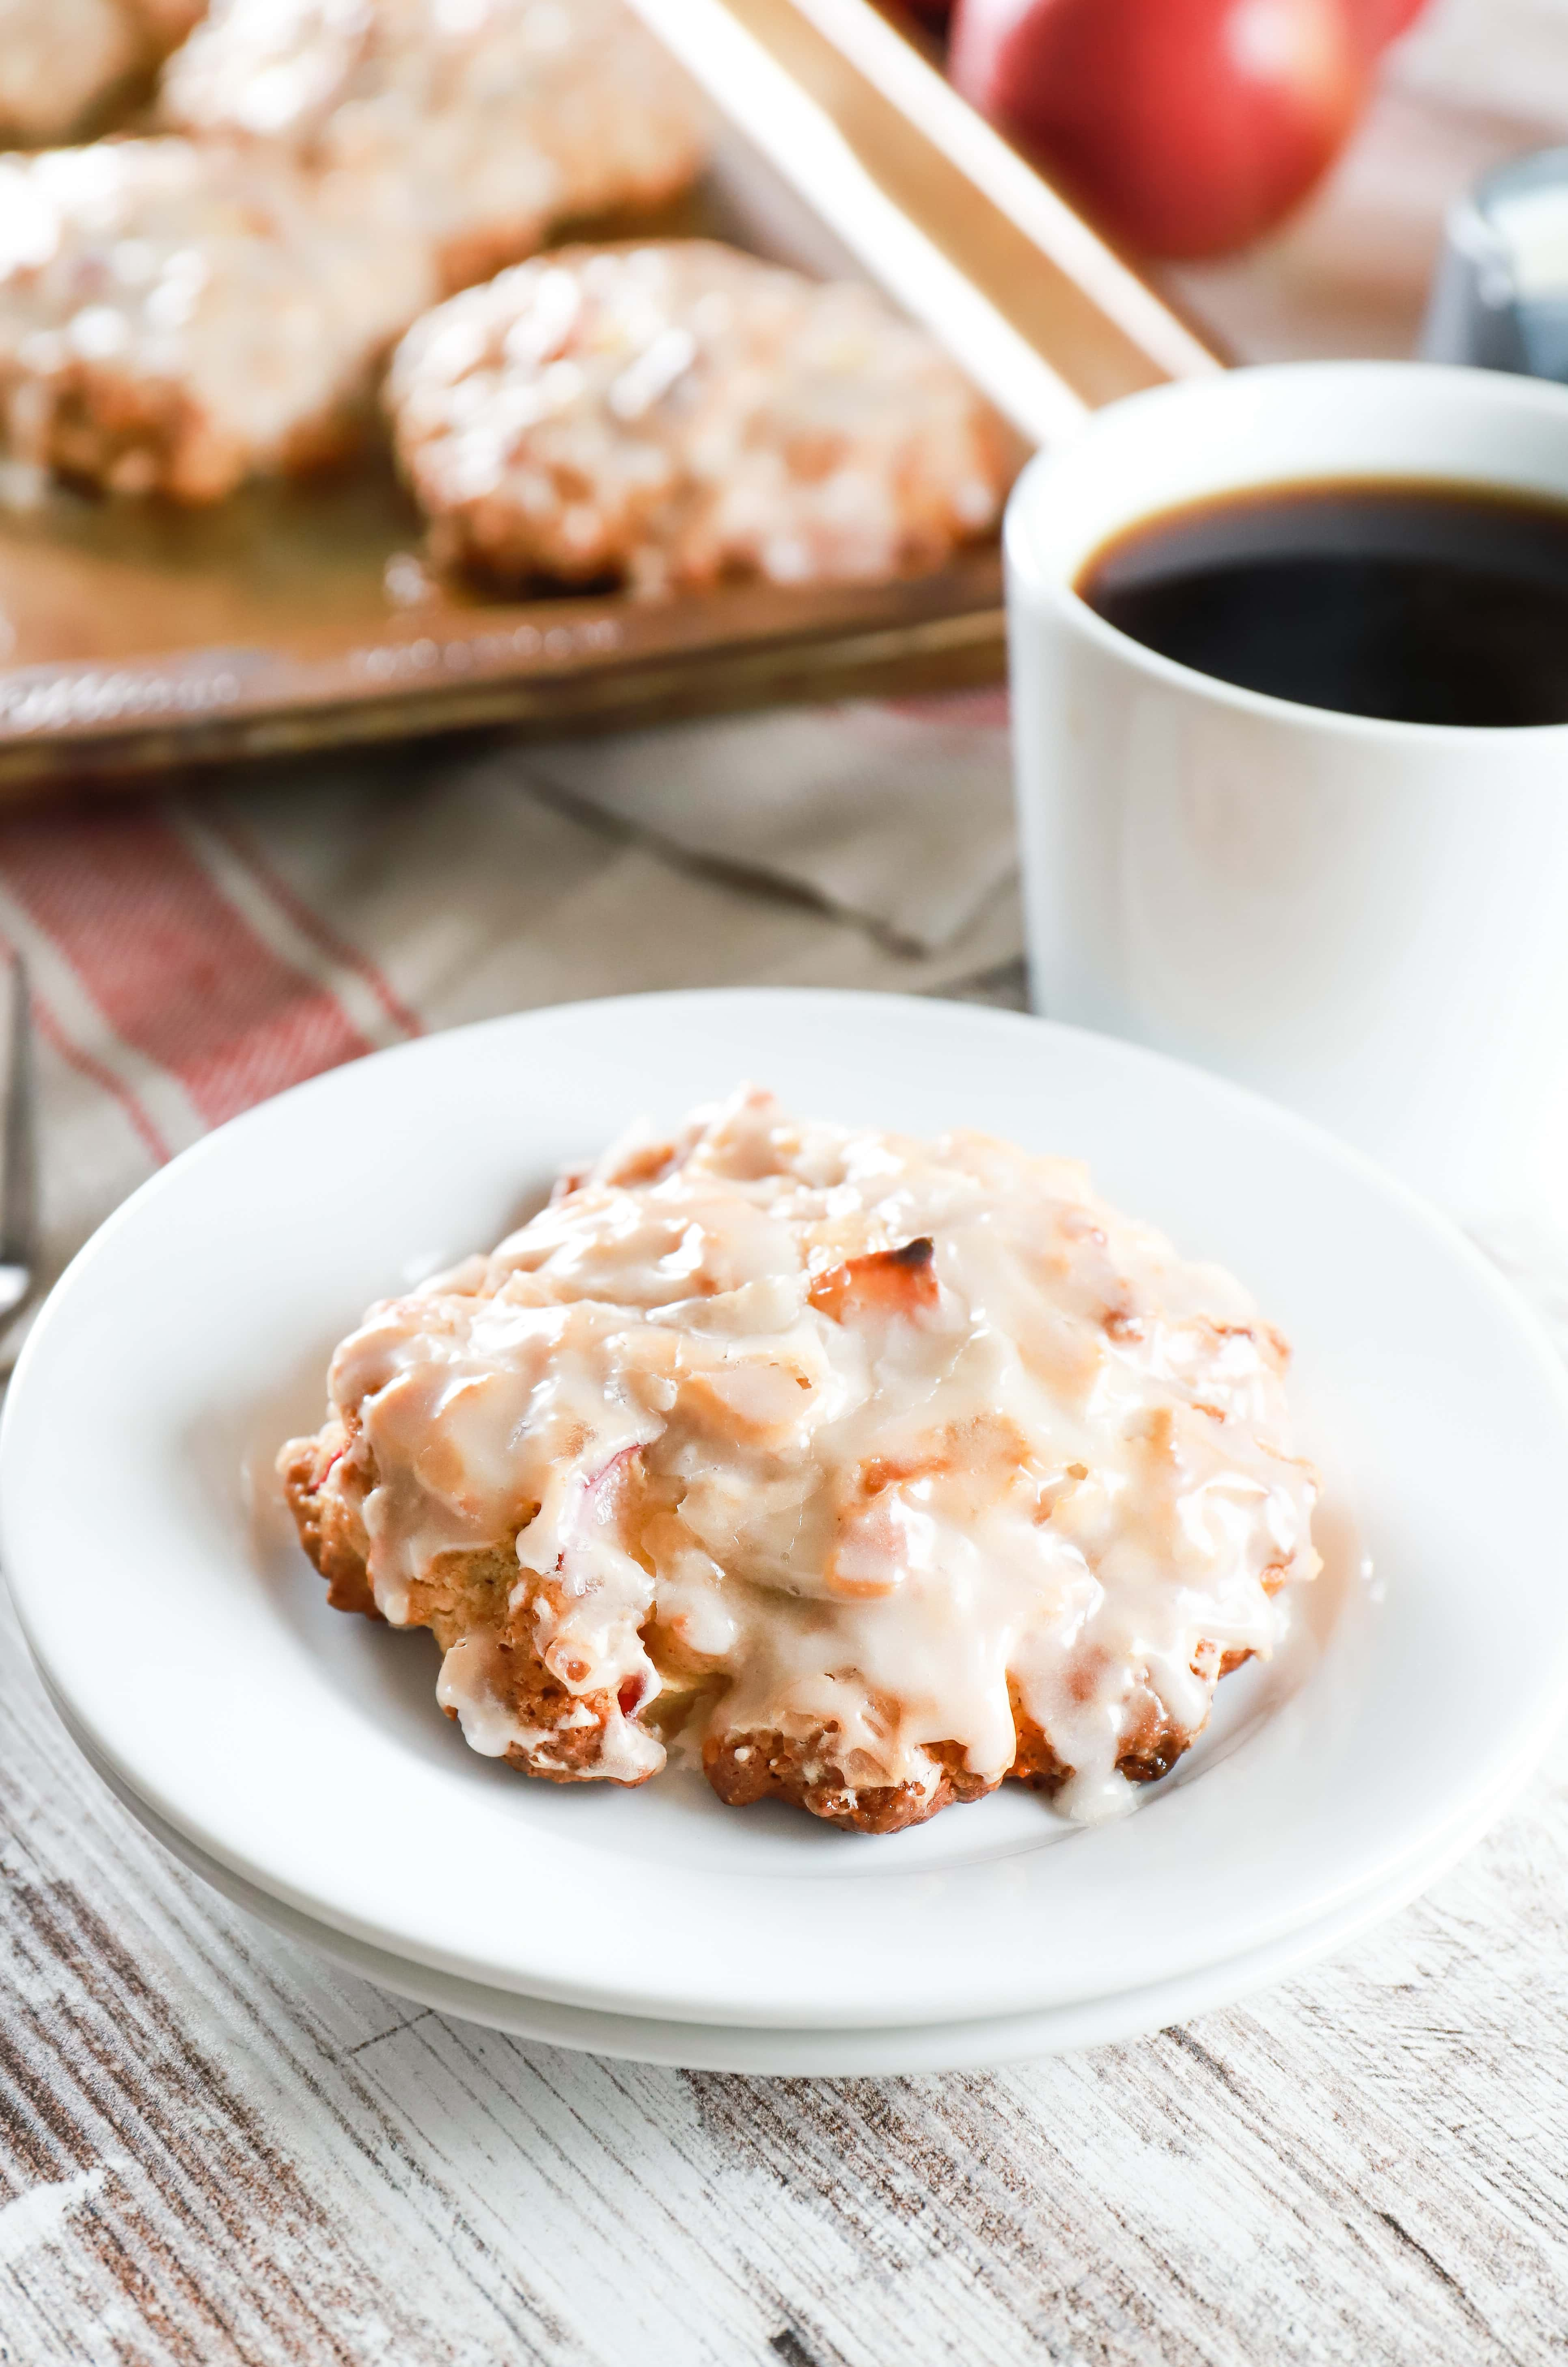 Baked apple fritter on a small white plate next to a cup of coffee. Recipe from A Kitchen Addiction